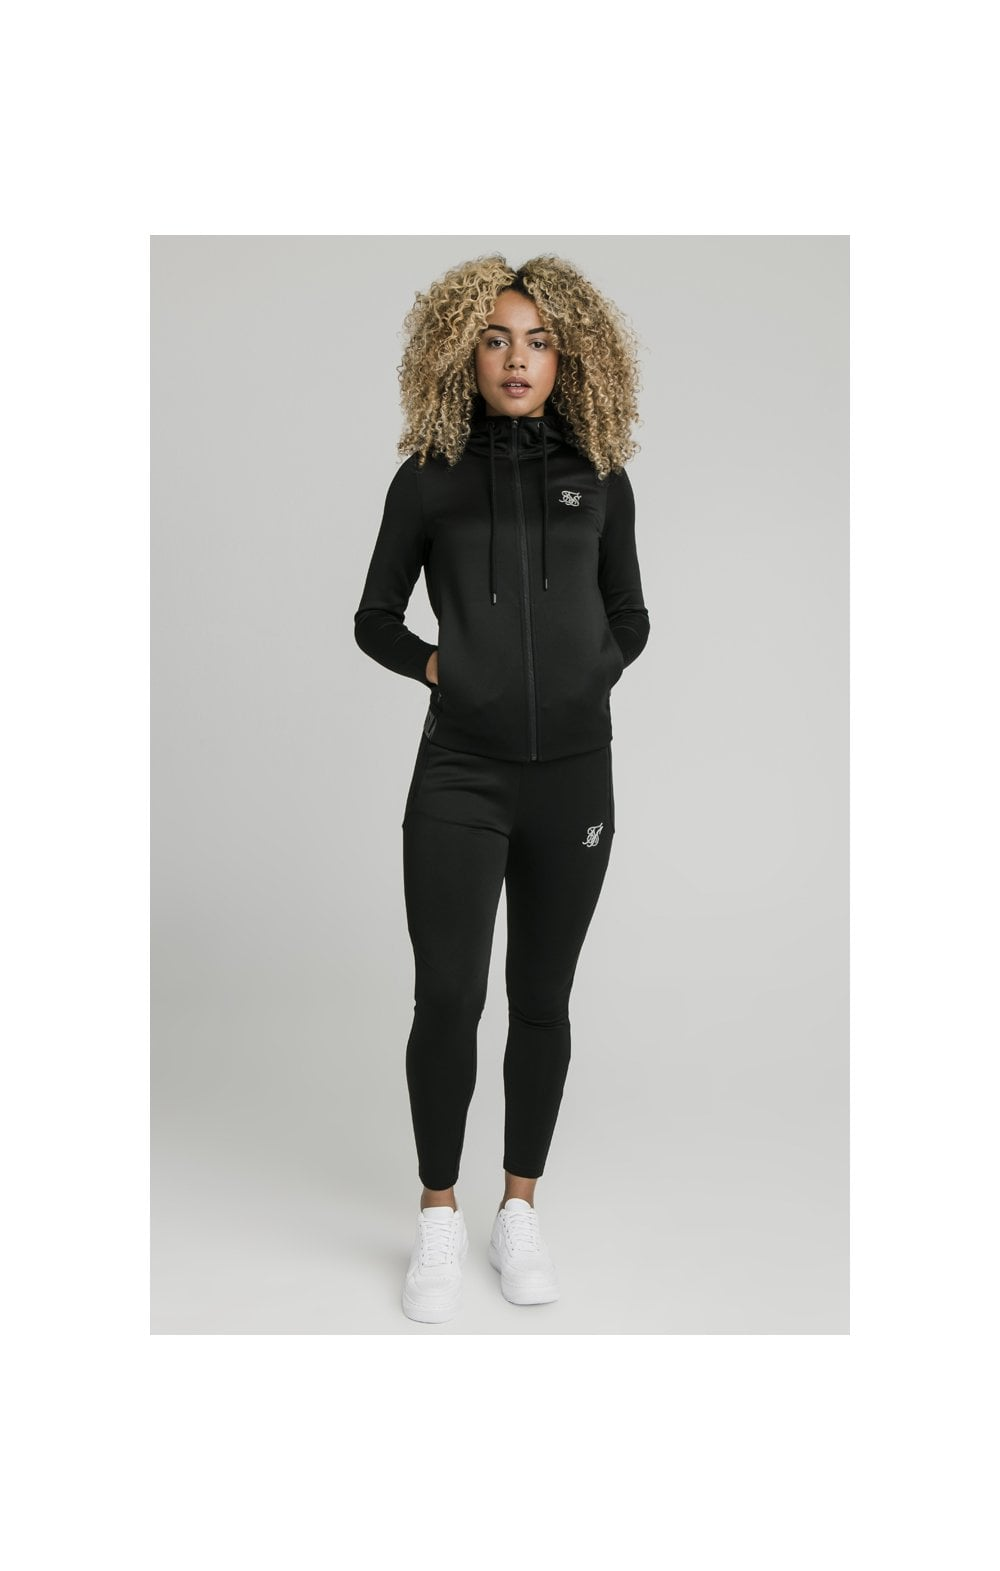 SikSilk Gym Track Jacket - Black (3)